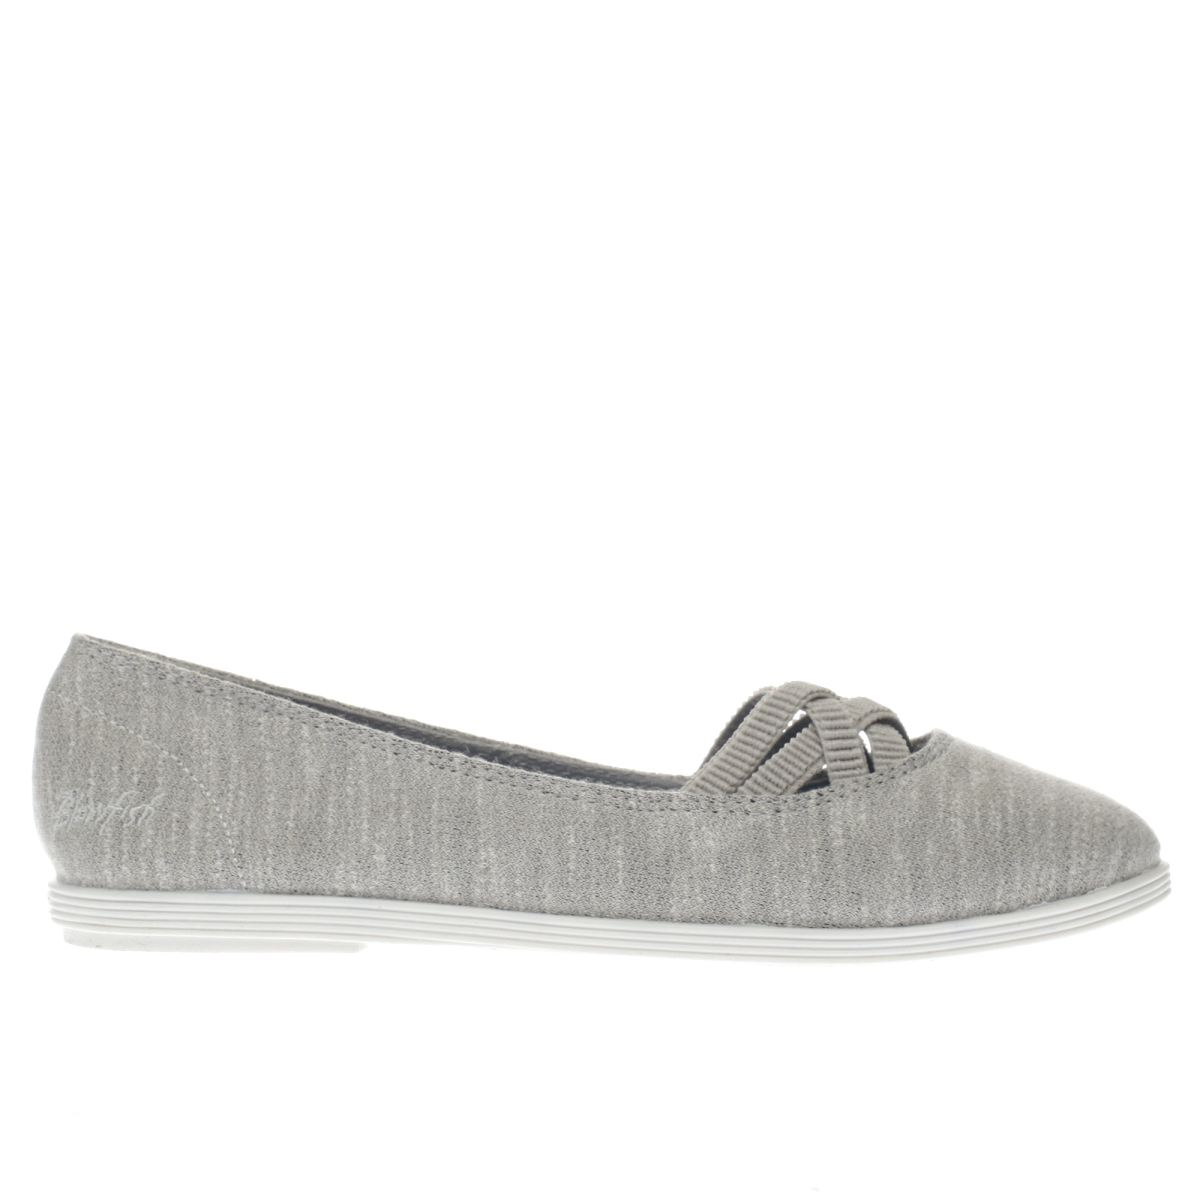 blowfish light grey grover jersey flat shoes